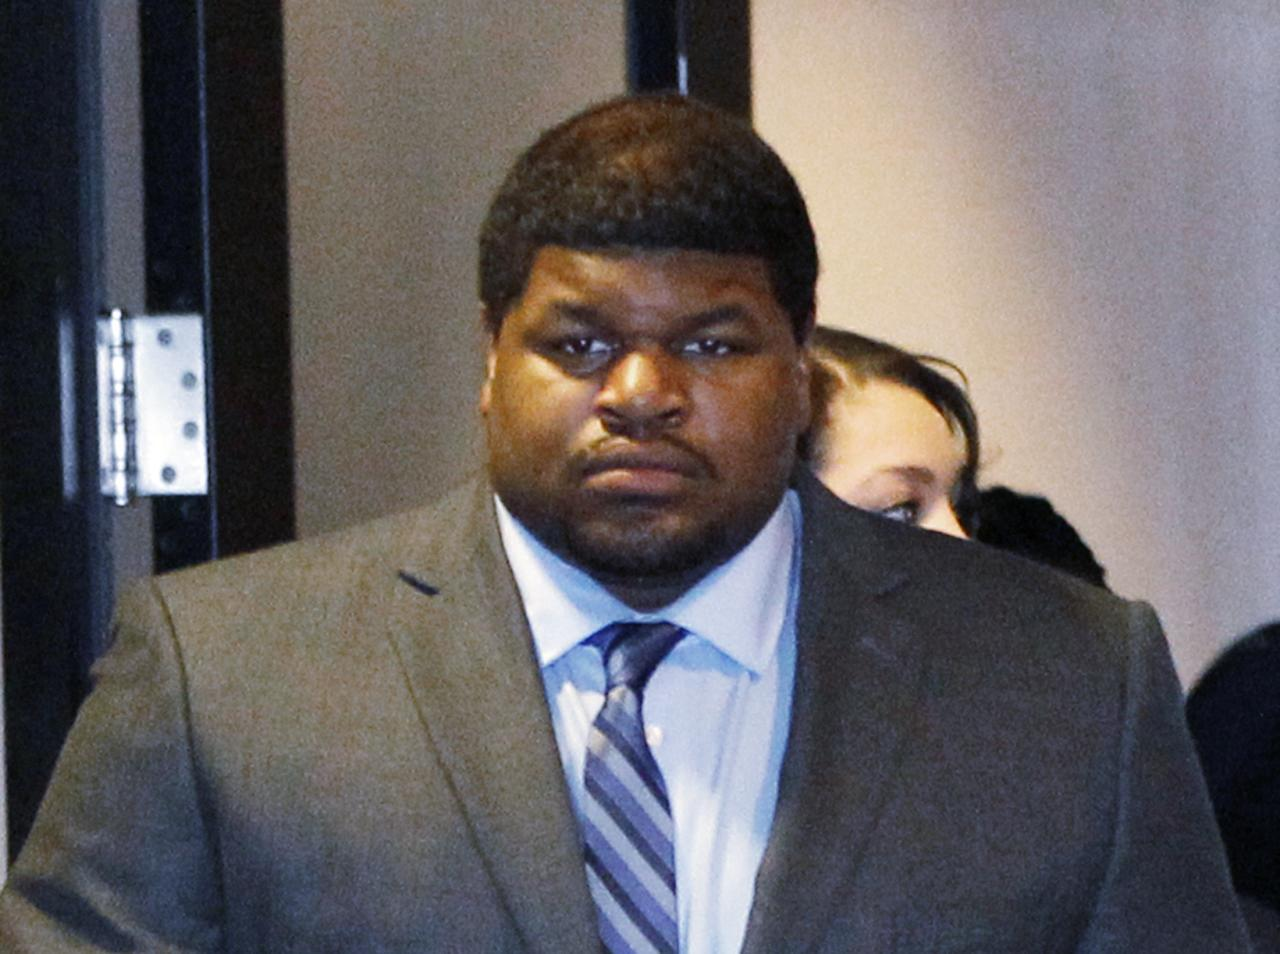 Former Dallas Cowboys player Josh Brent enters the courtroom in Dallas, Texas in this file photo taken January 14, 2014. A jury found Brent guilty of intoxication manslaughter charges on Wednesday, after he crashed his car, killing his friend and teammate Jerry Brown in 2012. REUTERS/Mike Stone/Files (UNITED STATES - Tags: CRIME LAW SPORT FOOTBALL)